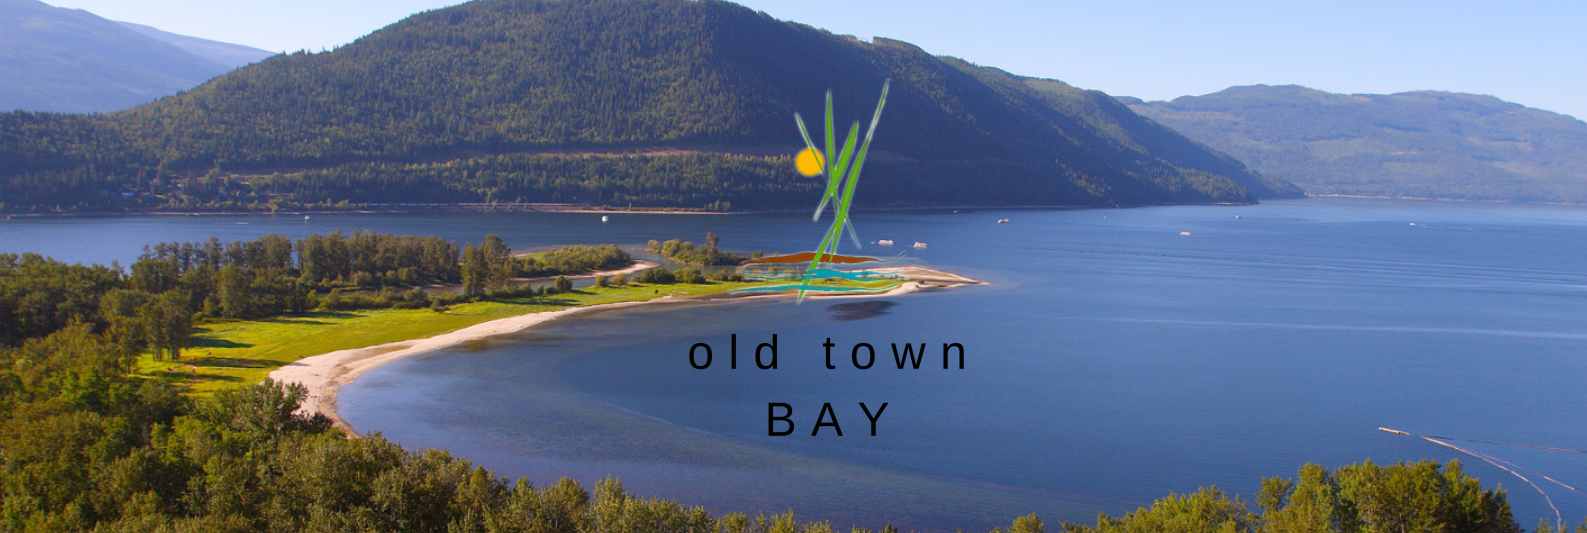 Old Town Bay